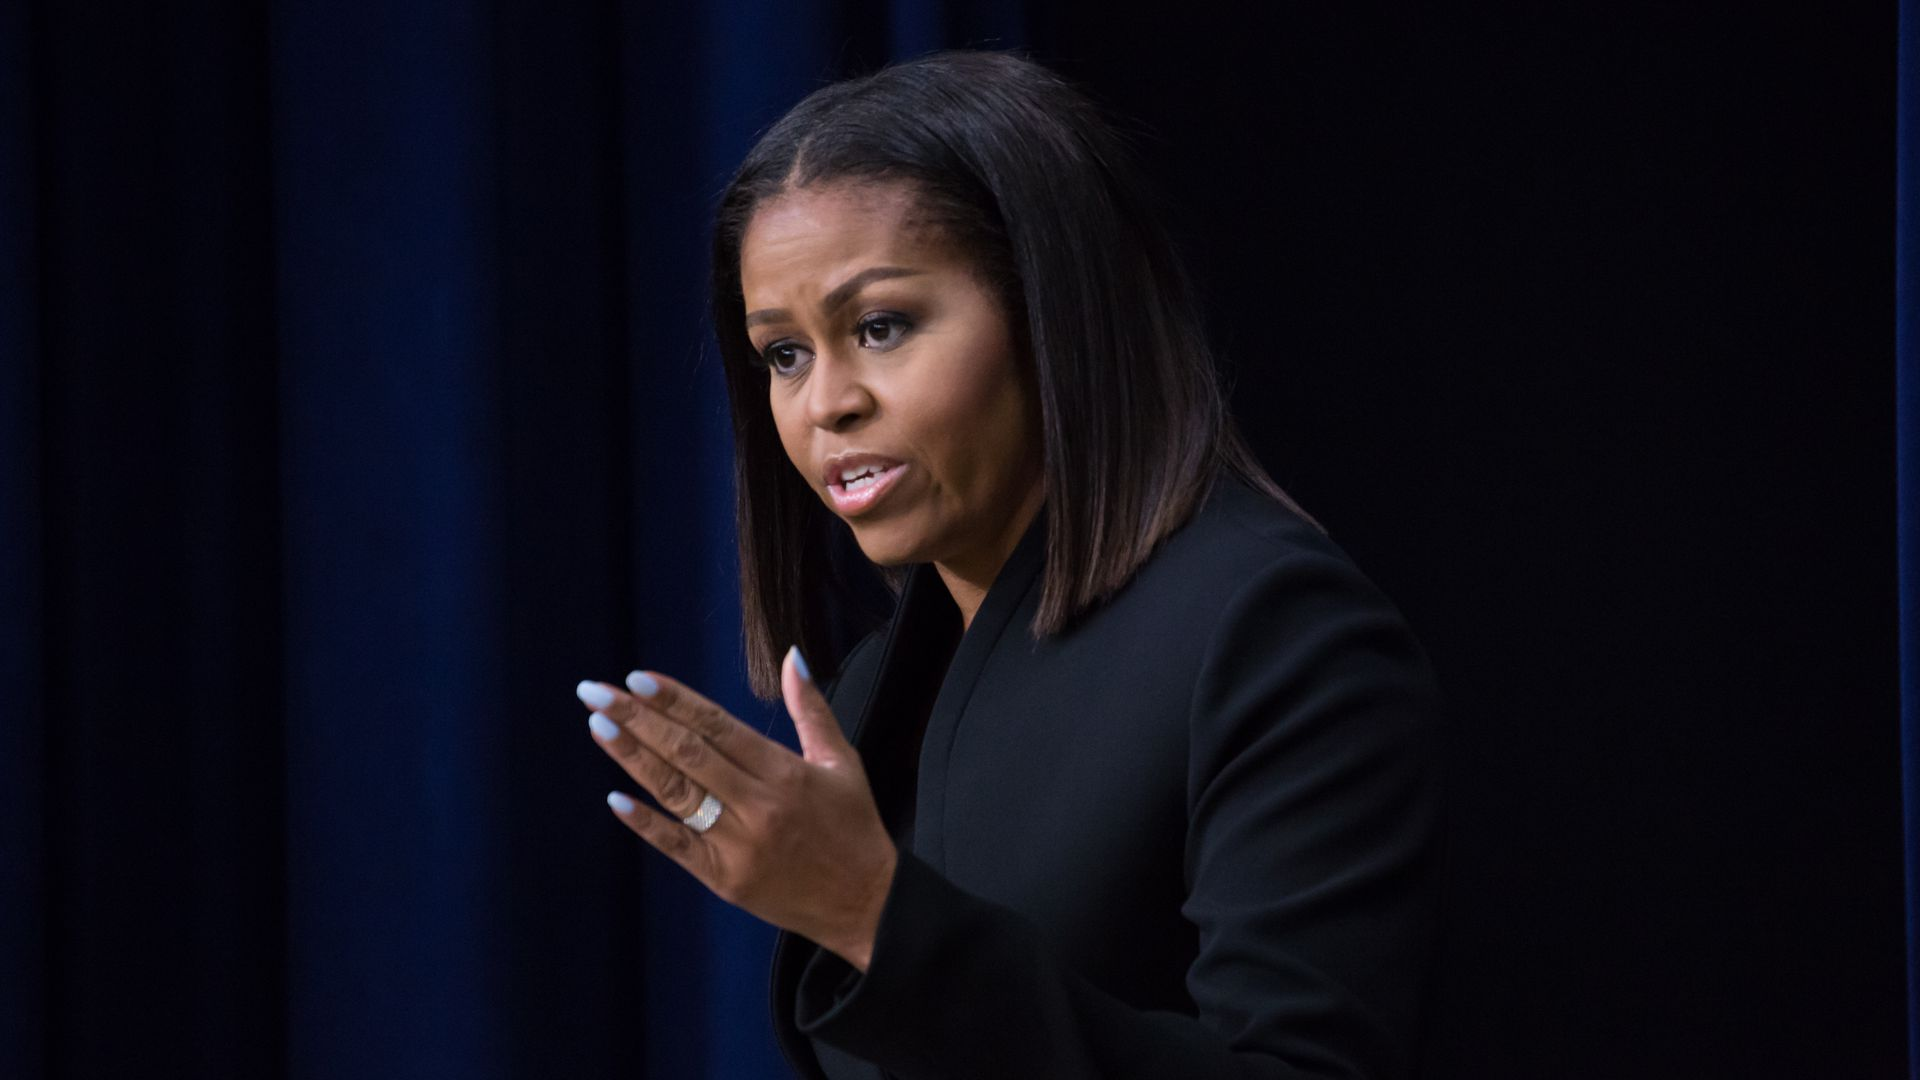 1920x1080 - Michelle Obama Wallpapers 31